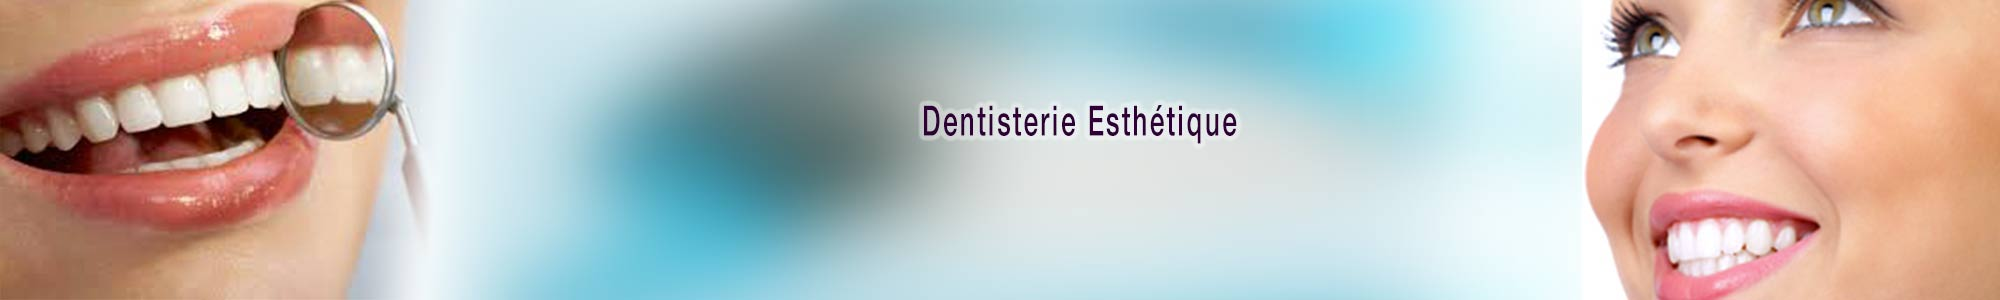 slide-dentisterie-esthetique